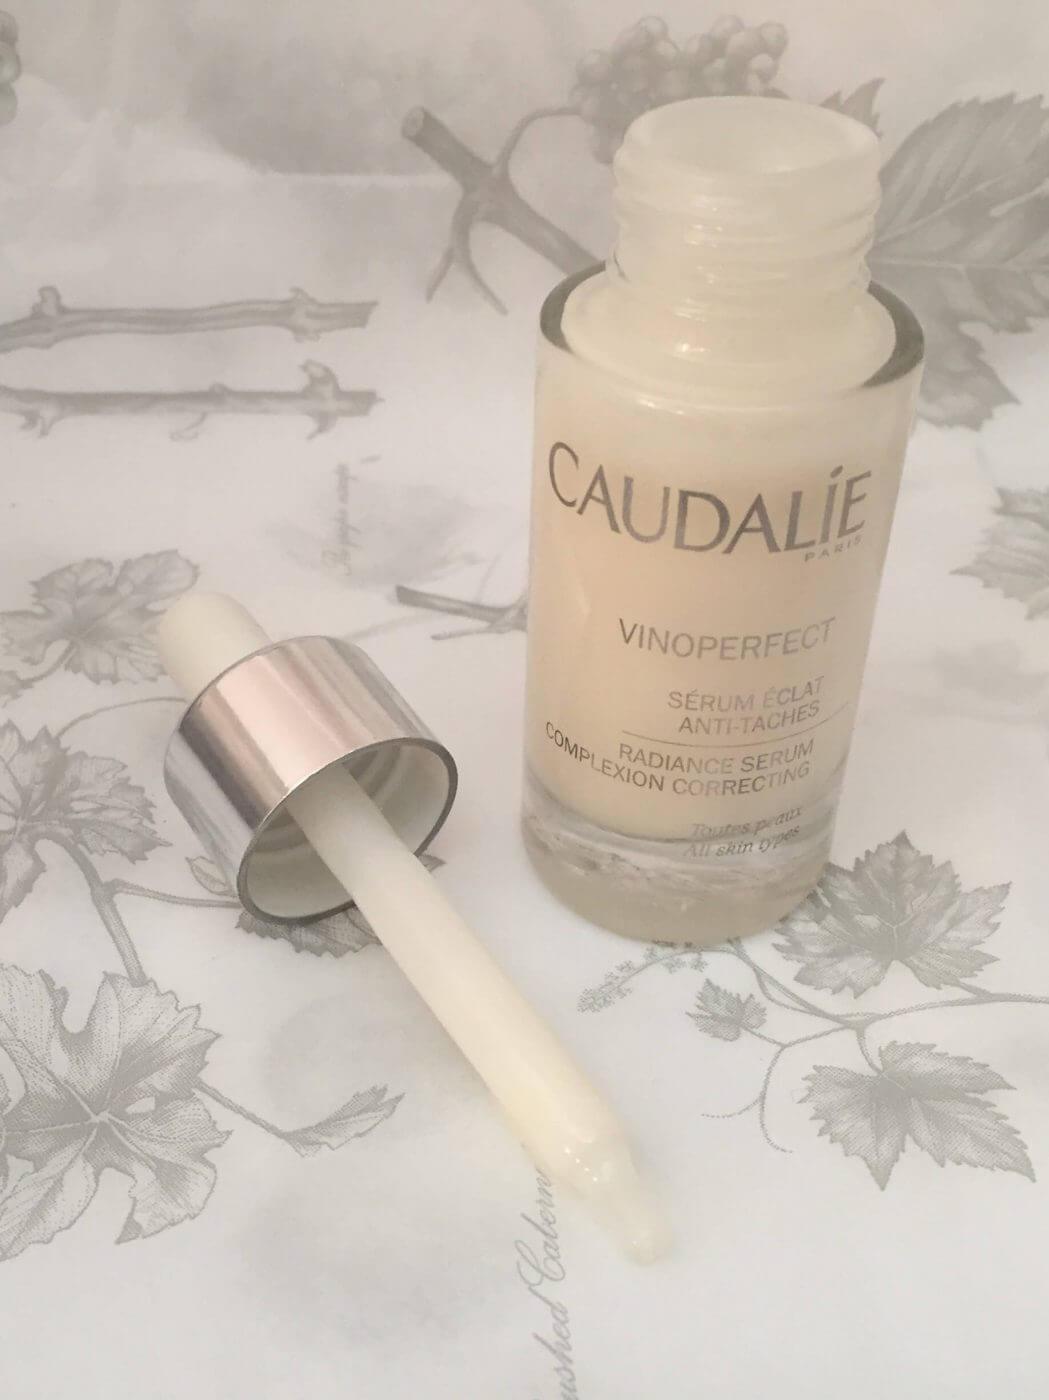 Caudalie Vinoperfect Serum Pipette